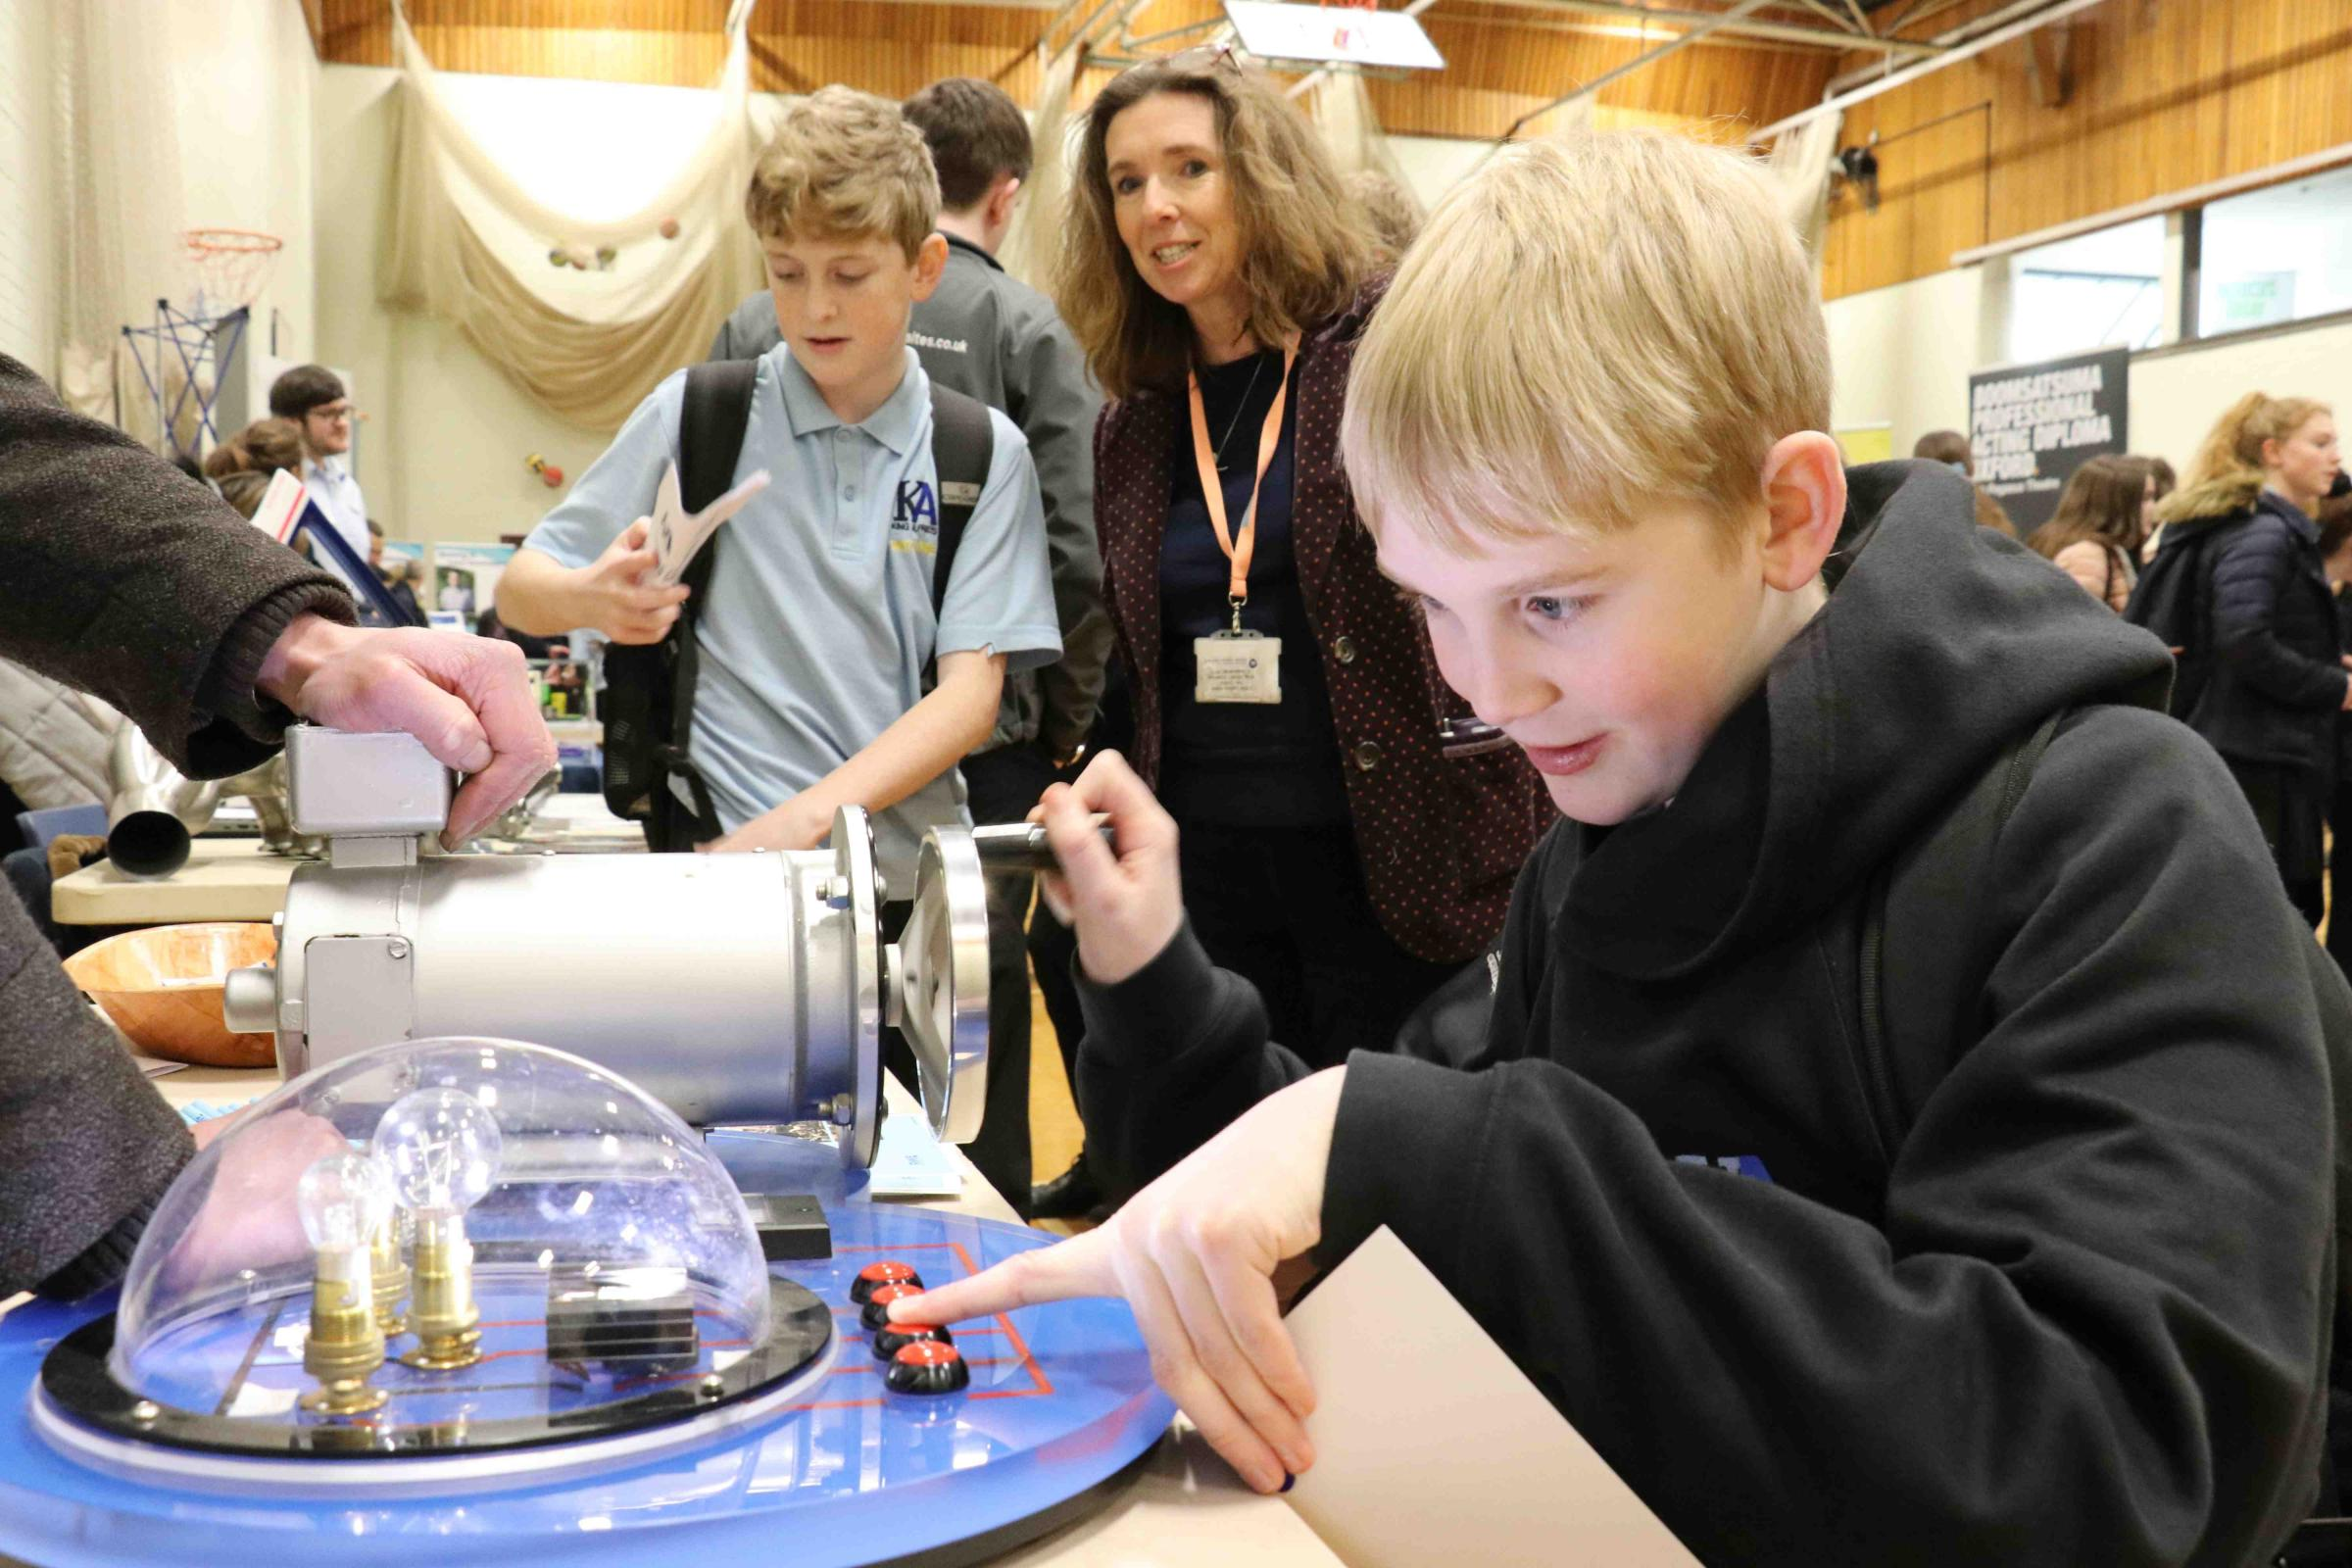 Students explore some scientific job options at King Alfred's Academy's careers convention at Wantage Leisure Centre on Tuesday, February 6, 2018. Picture: Vale Academy Trust